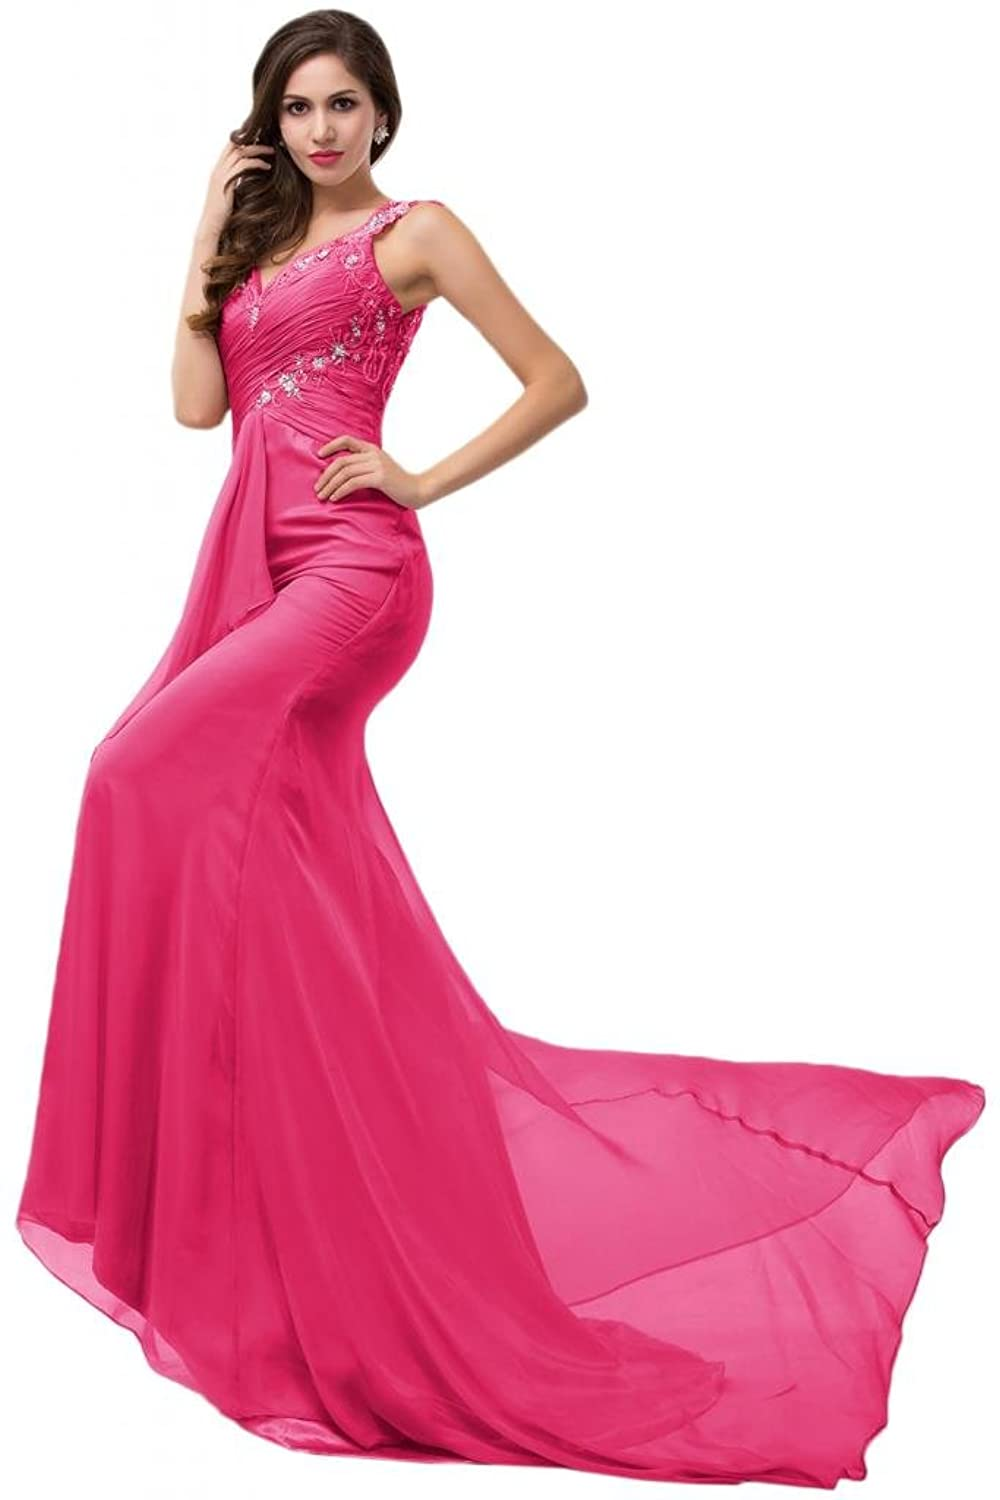 Sunvary Girl Short Column Homecoming Gowns Party Dresses Cocktail Dresses